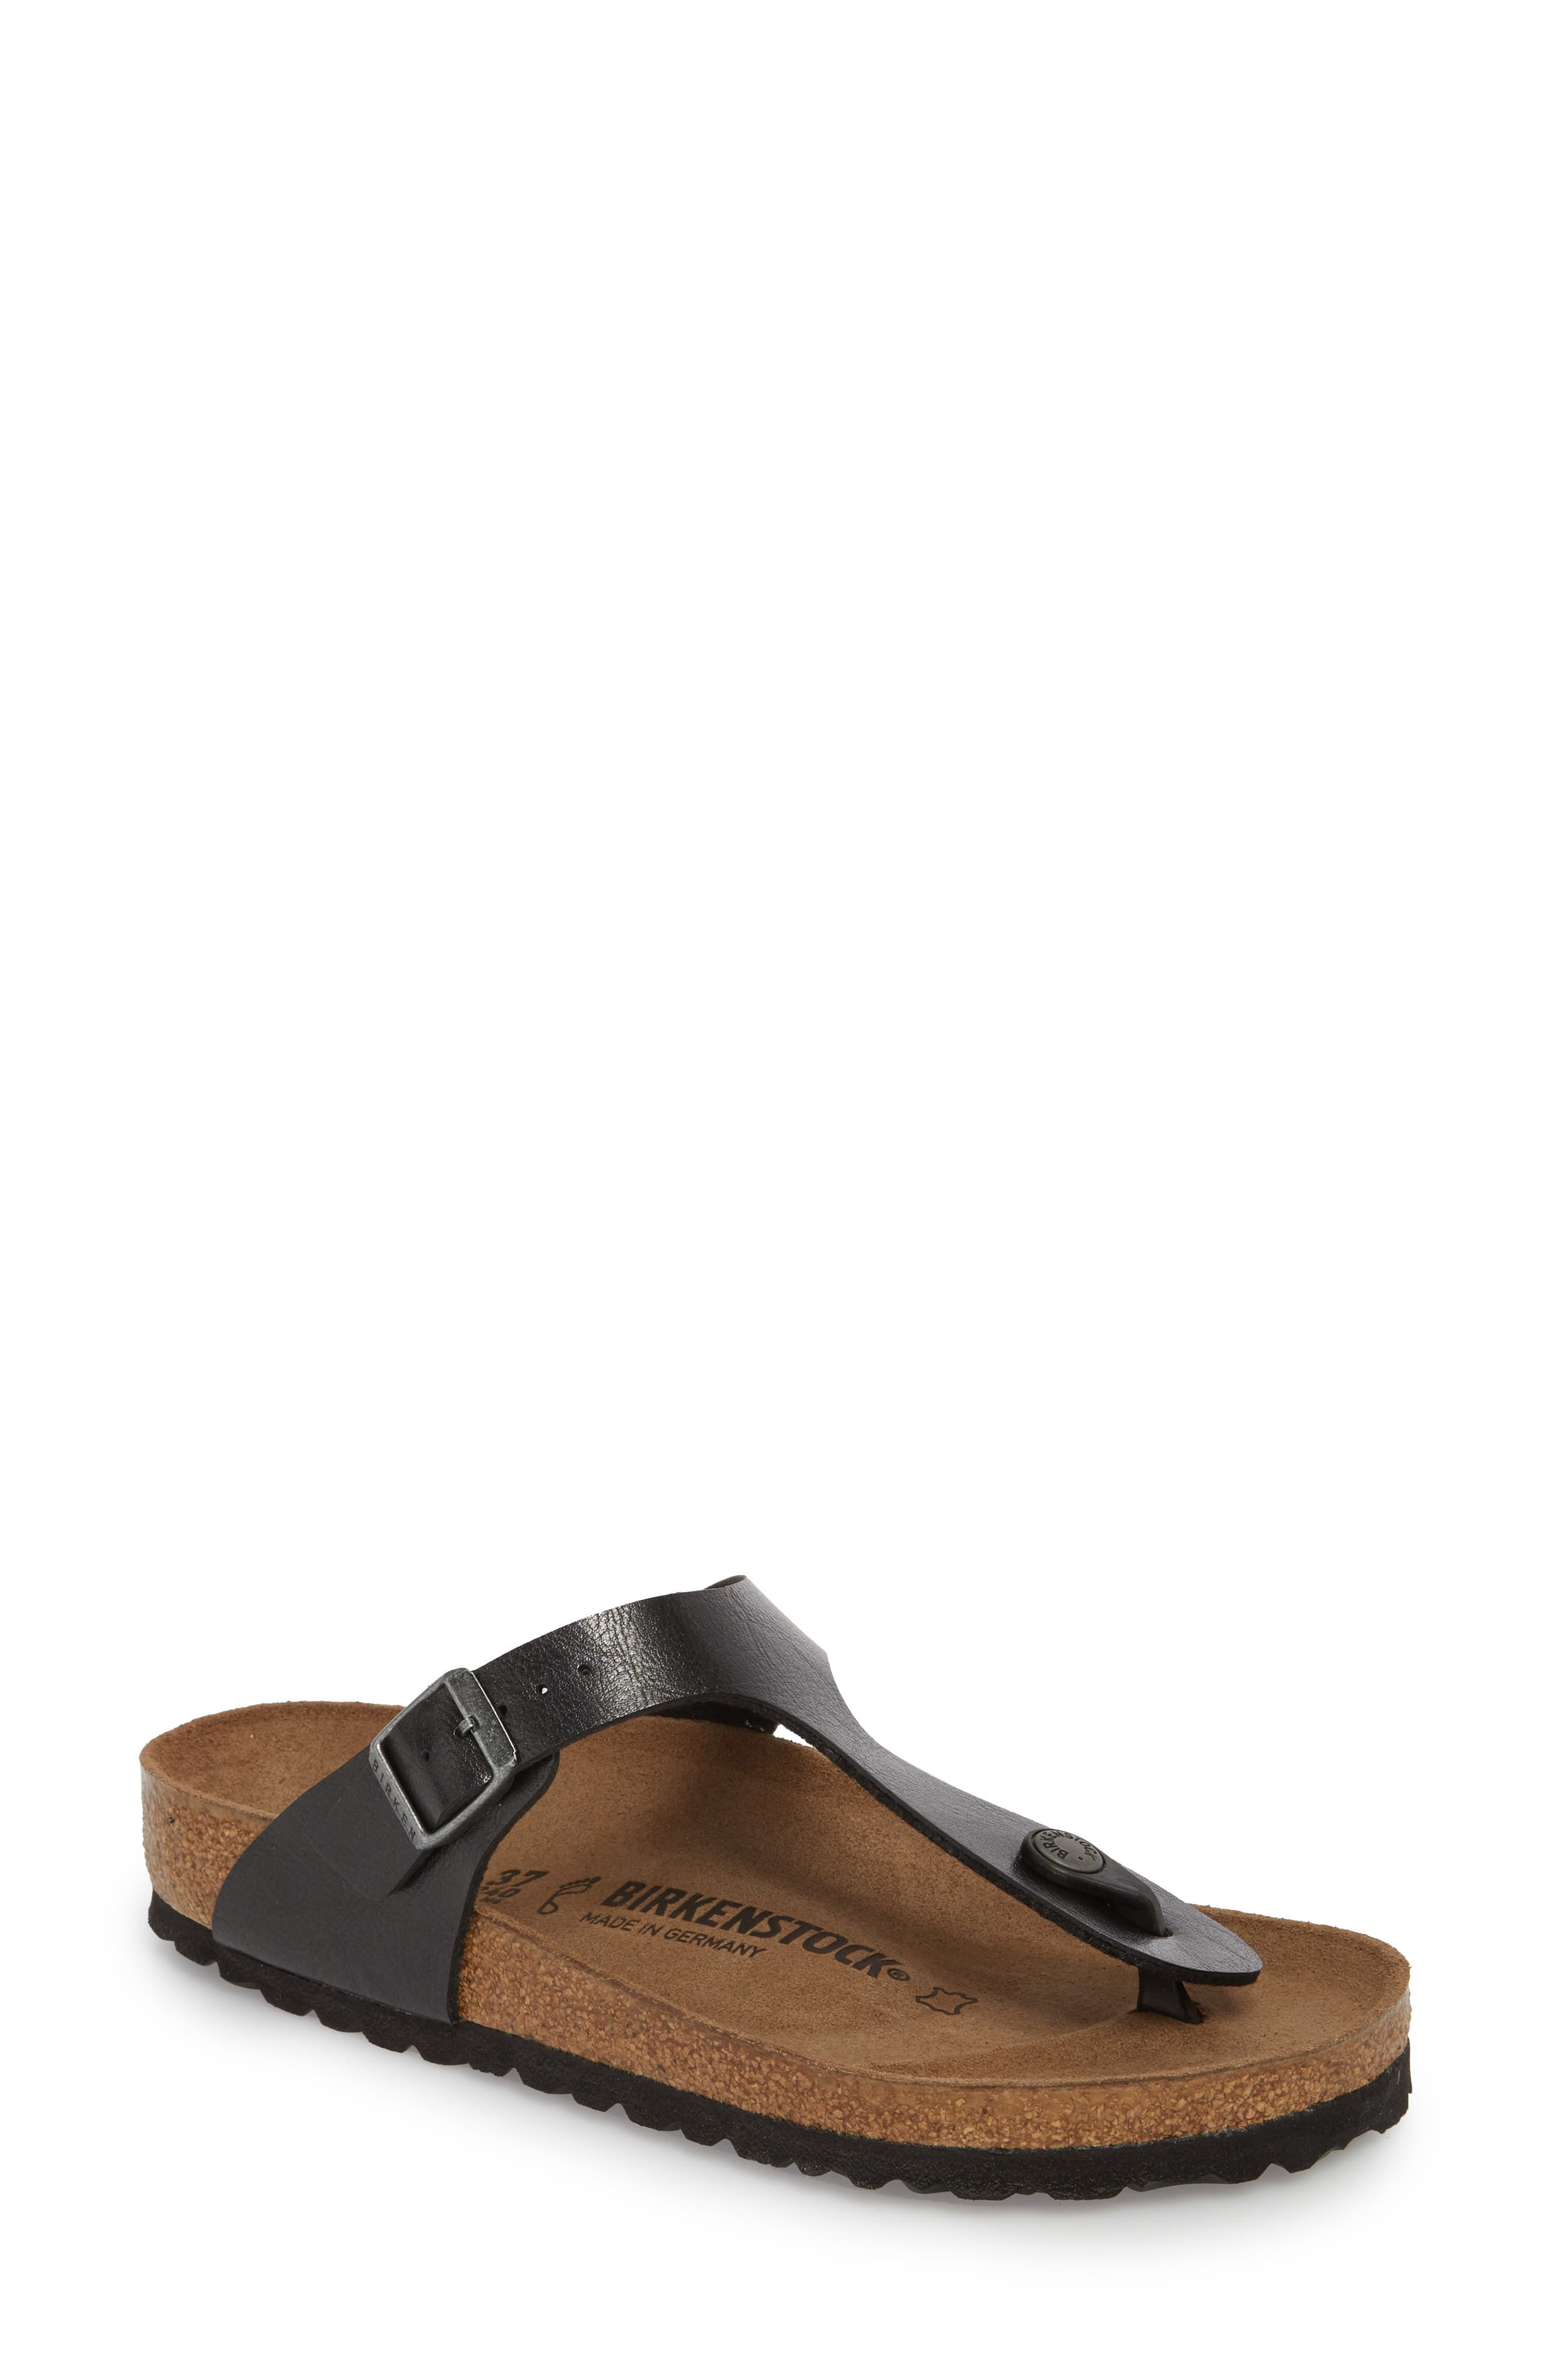 BIRKENSTOCK Gizeh Birko-Flor<sup>™</sup> Thong, Main, color, LICORICE